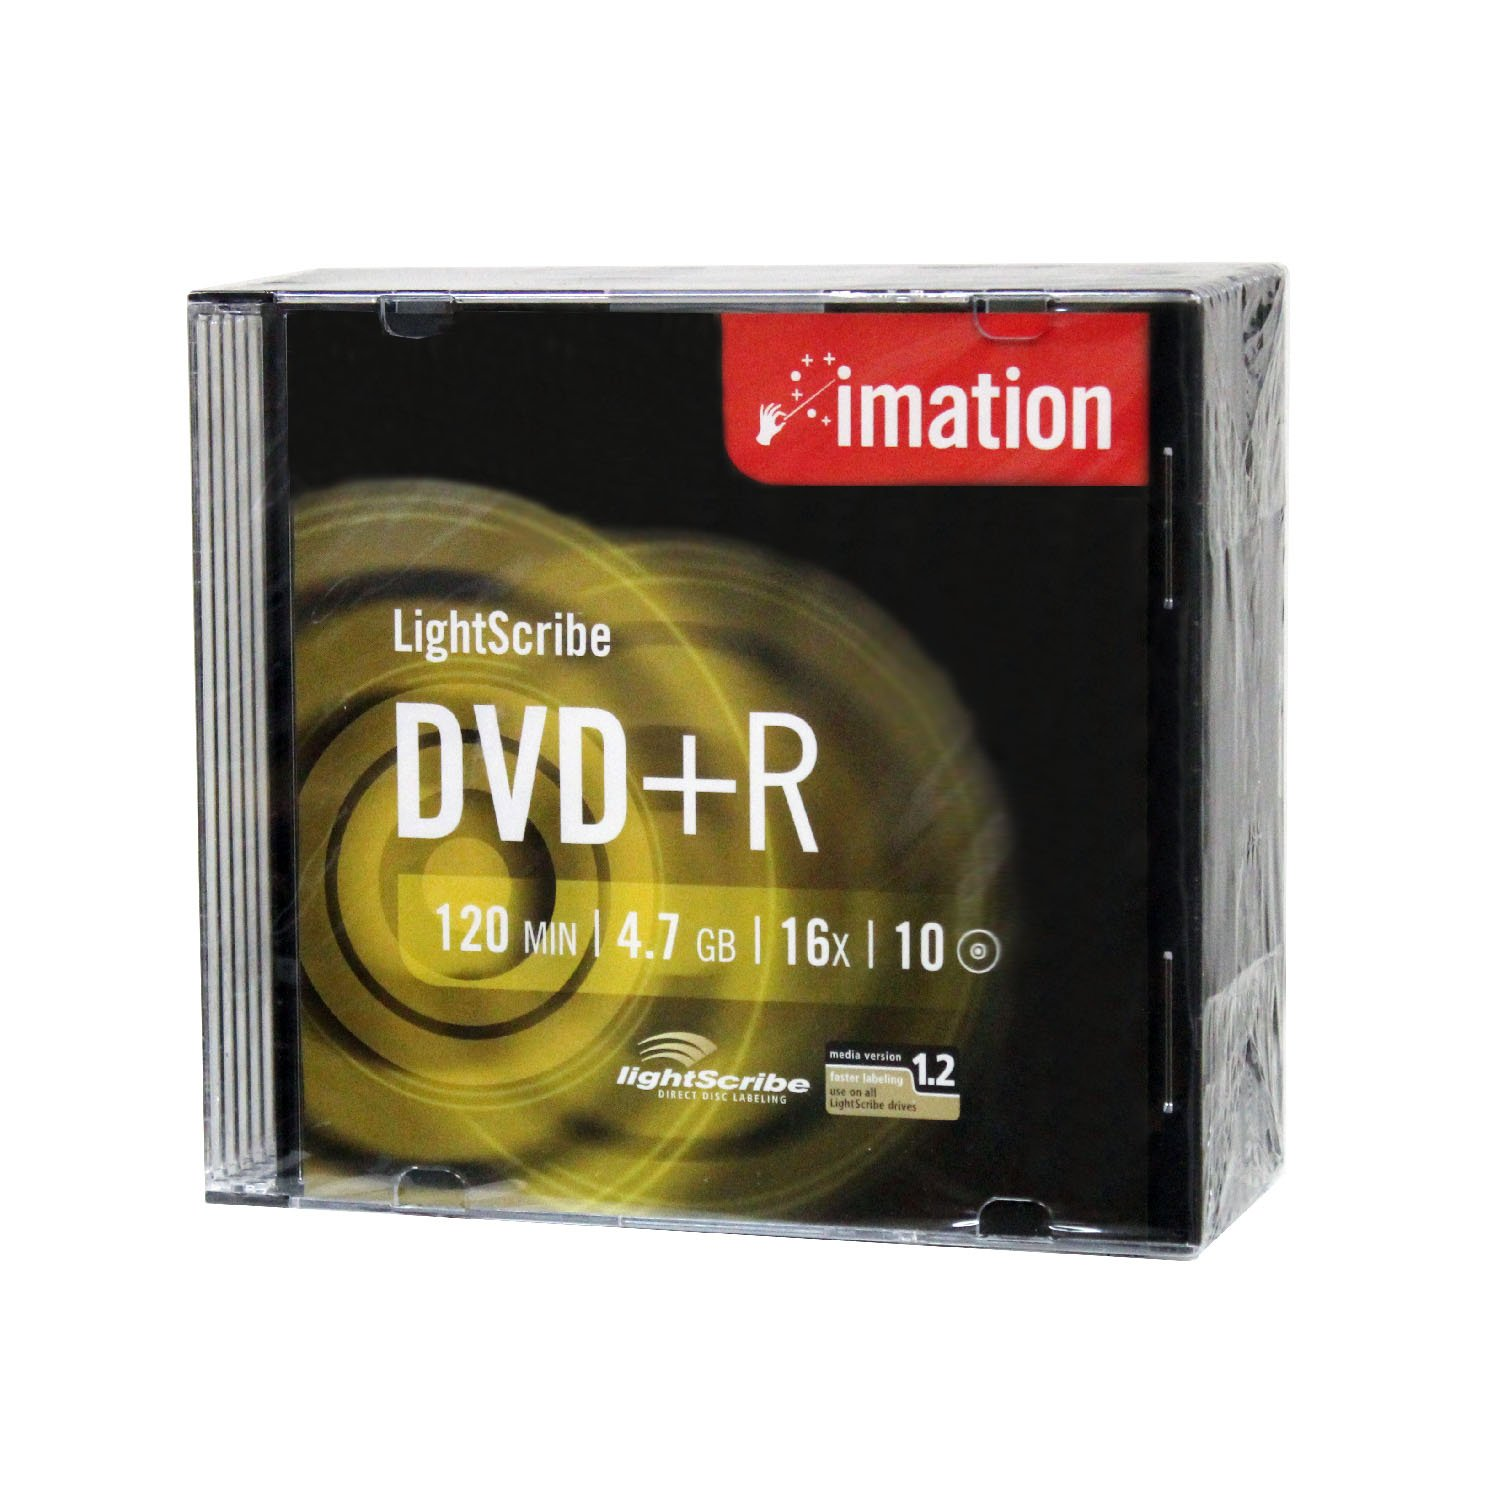 Imation 16x DVD+R LightScribe Printable Blank Media, 4.7GB/120min - 10 Pack by AMBA7